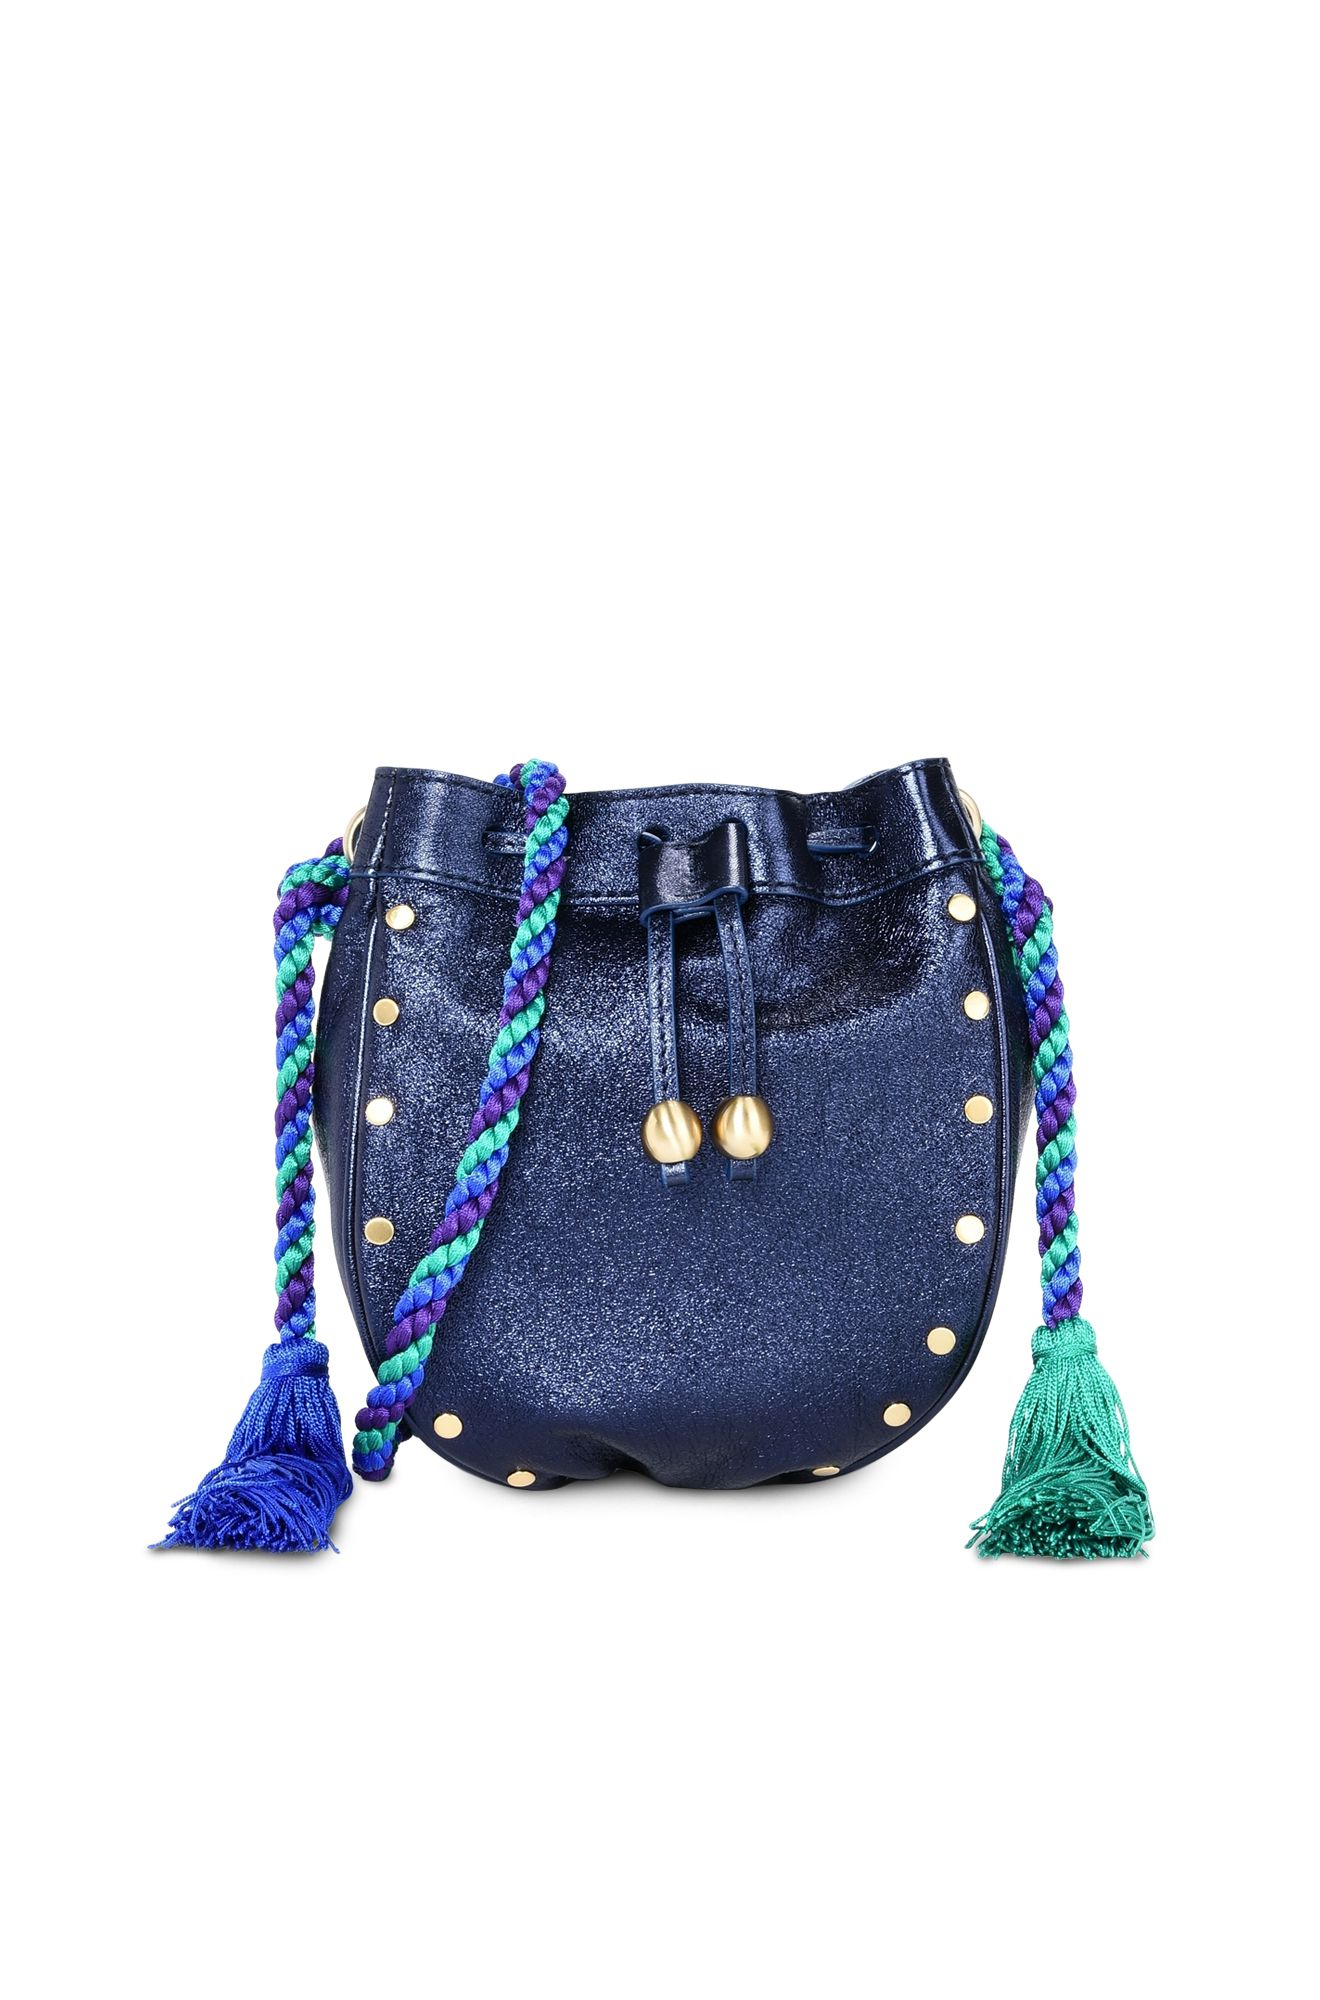 Blue Melody bag